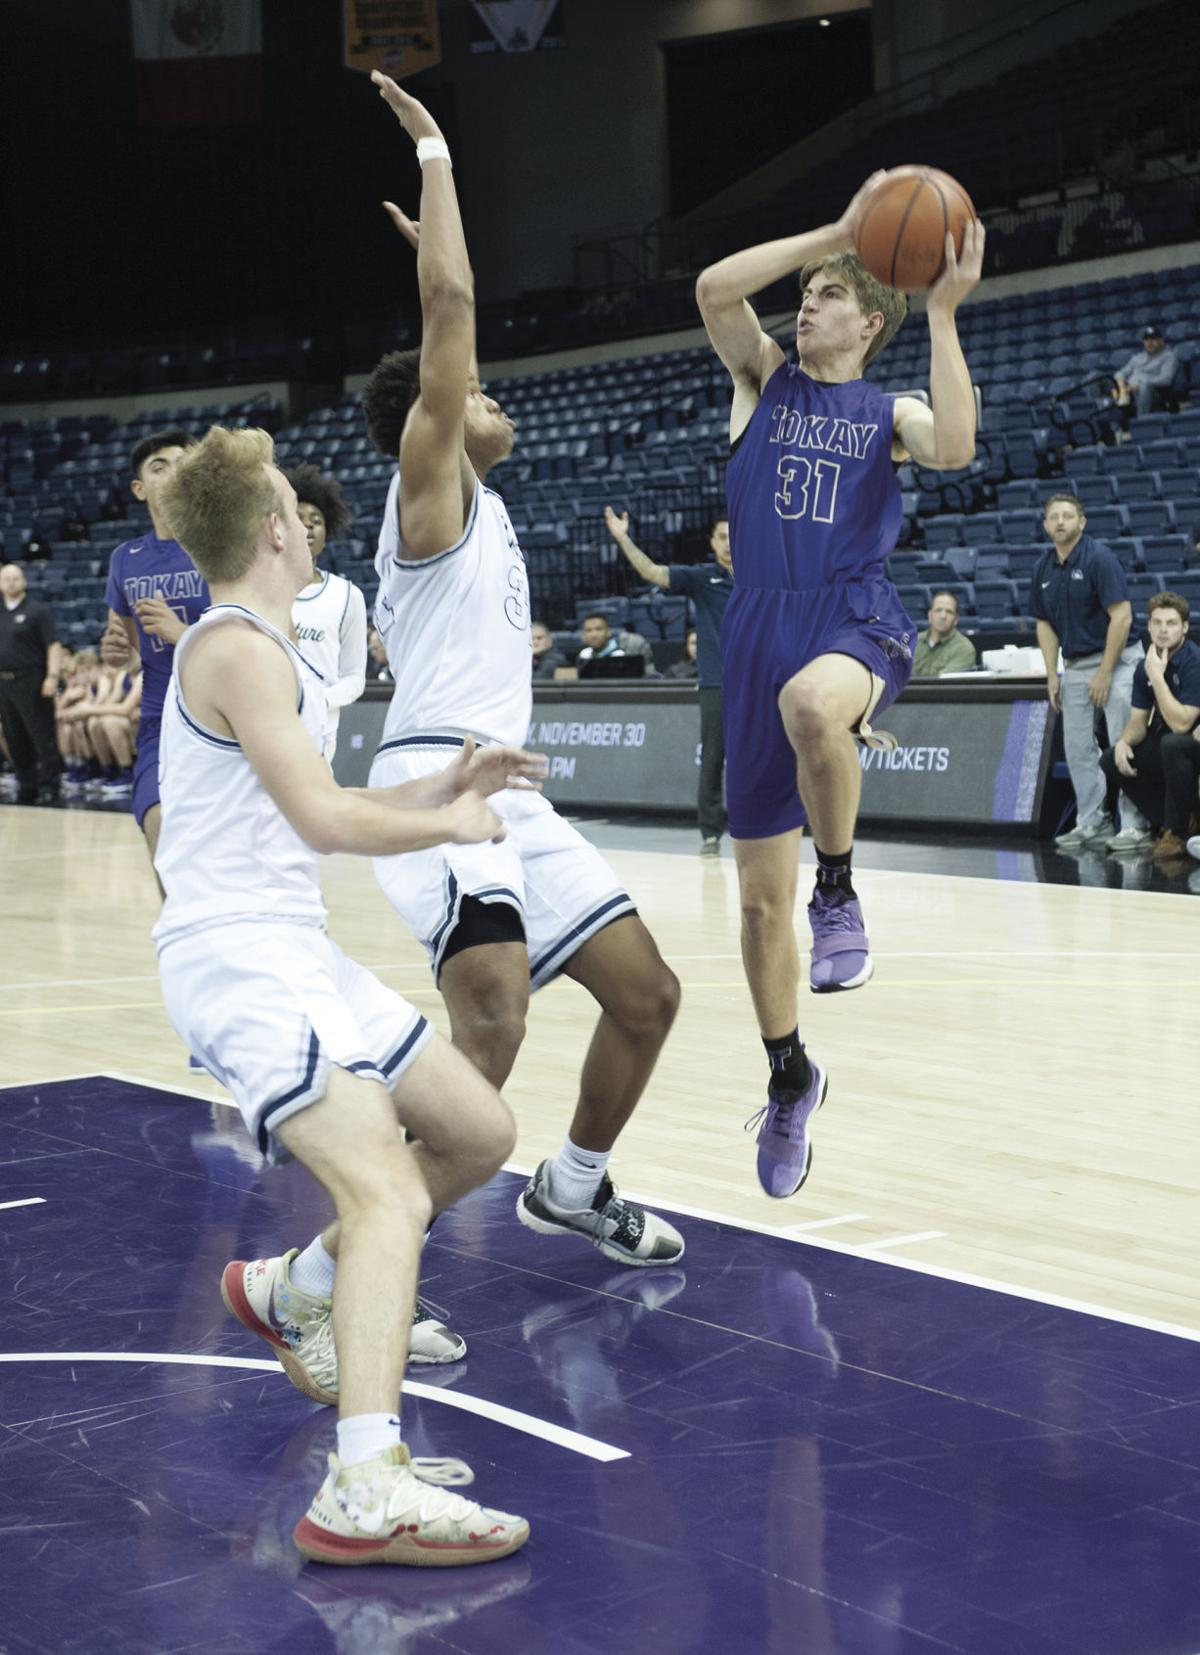 Boys basketball: Tokay can't corral Mustangs